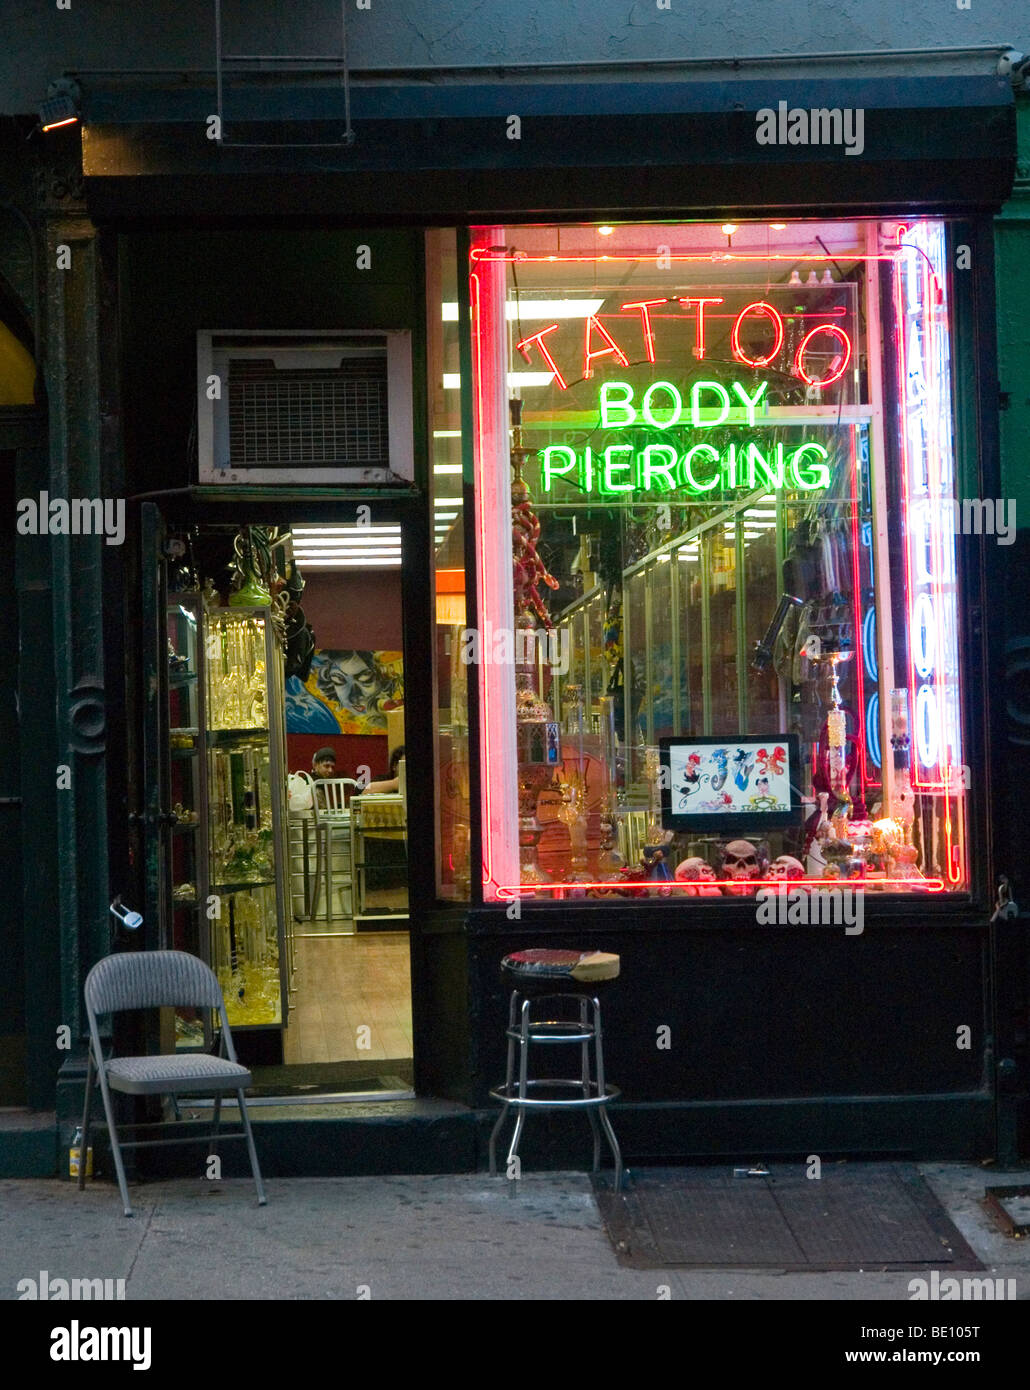 A tattoo and body piercing store in greenwich village new for Tattoo shops in new york